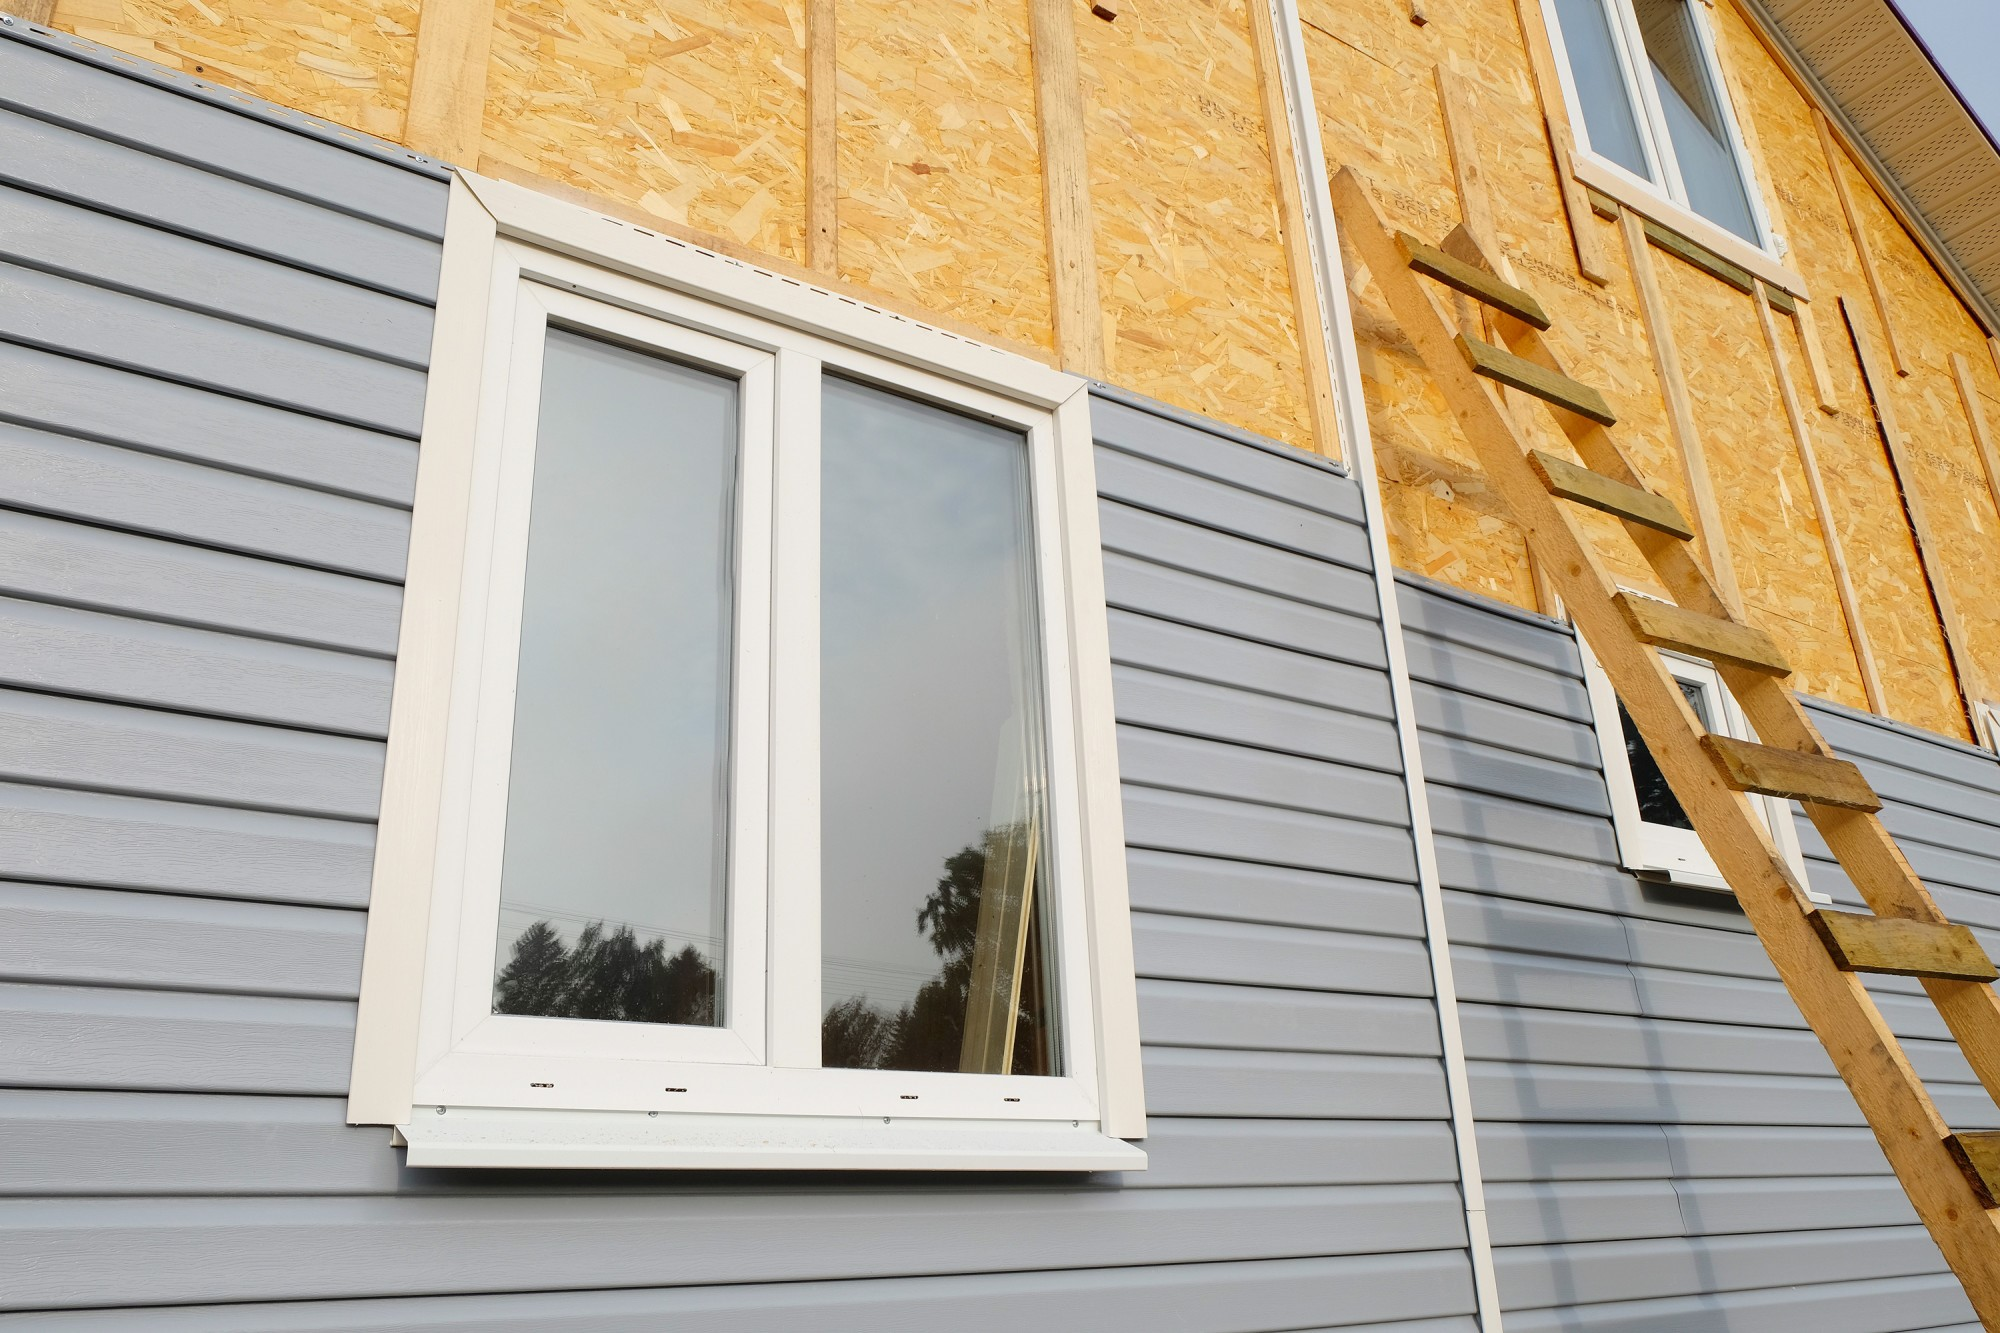 image - How to Pick the Best Siding Material for Your House